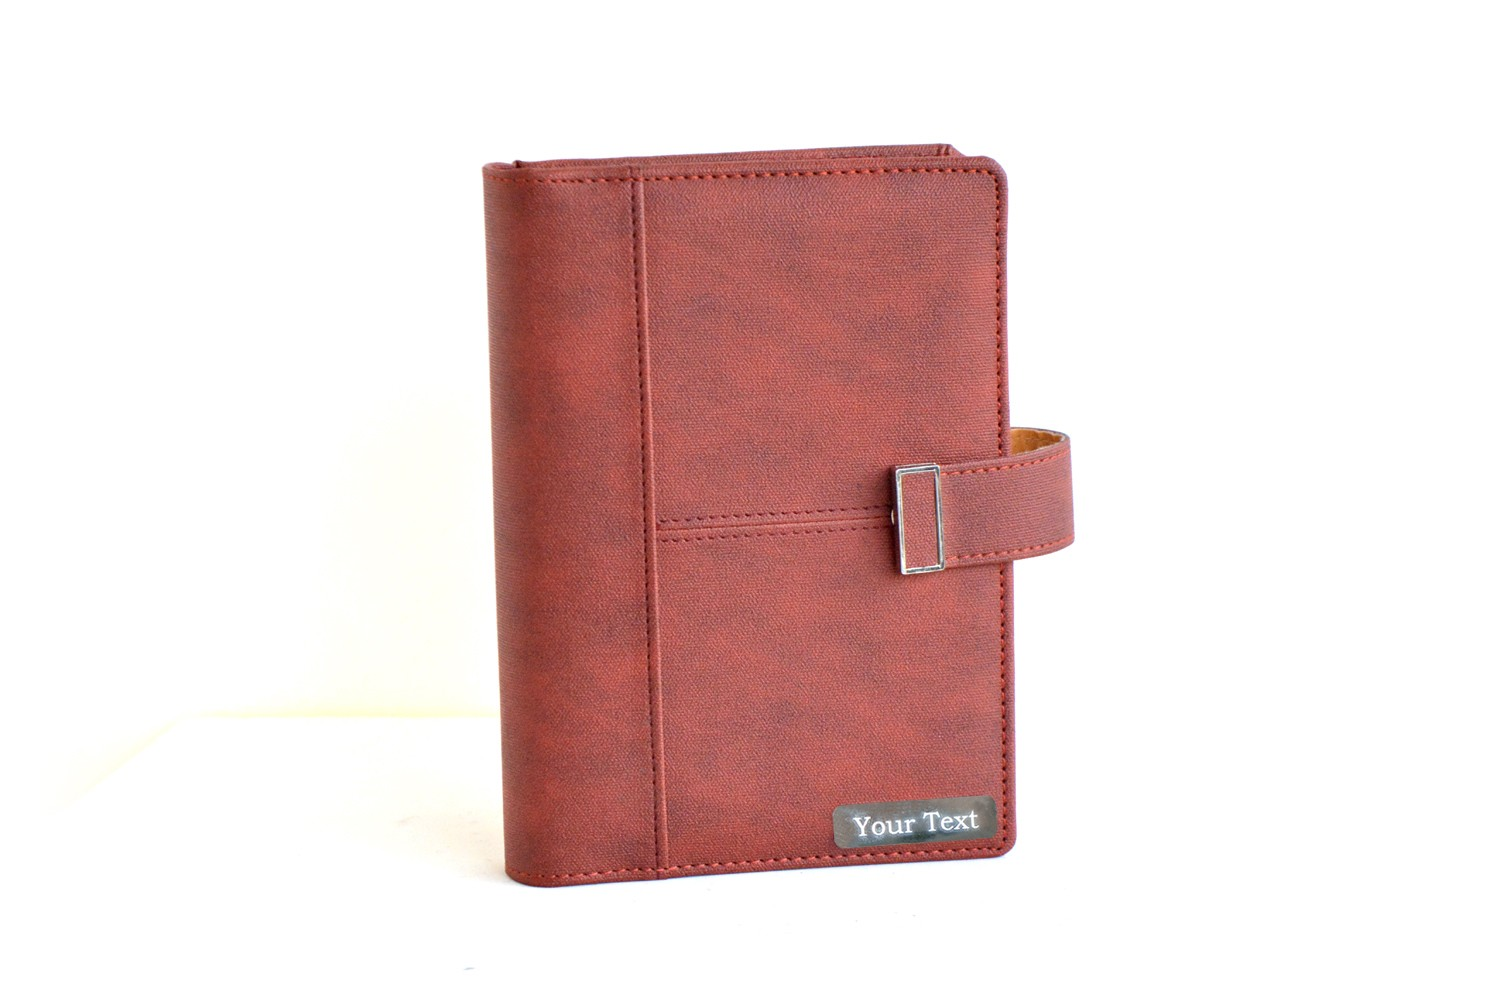 Personalised Leather Business Organiser - Brown